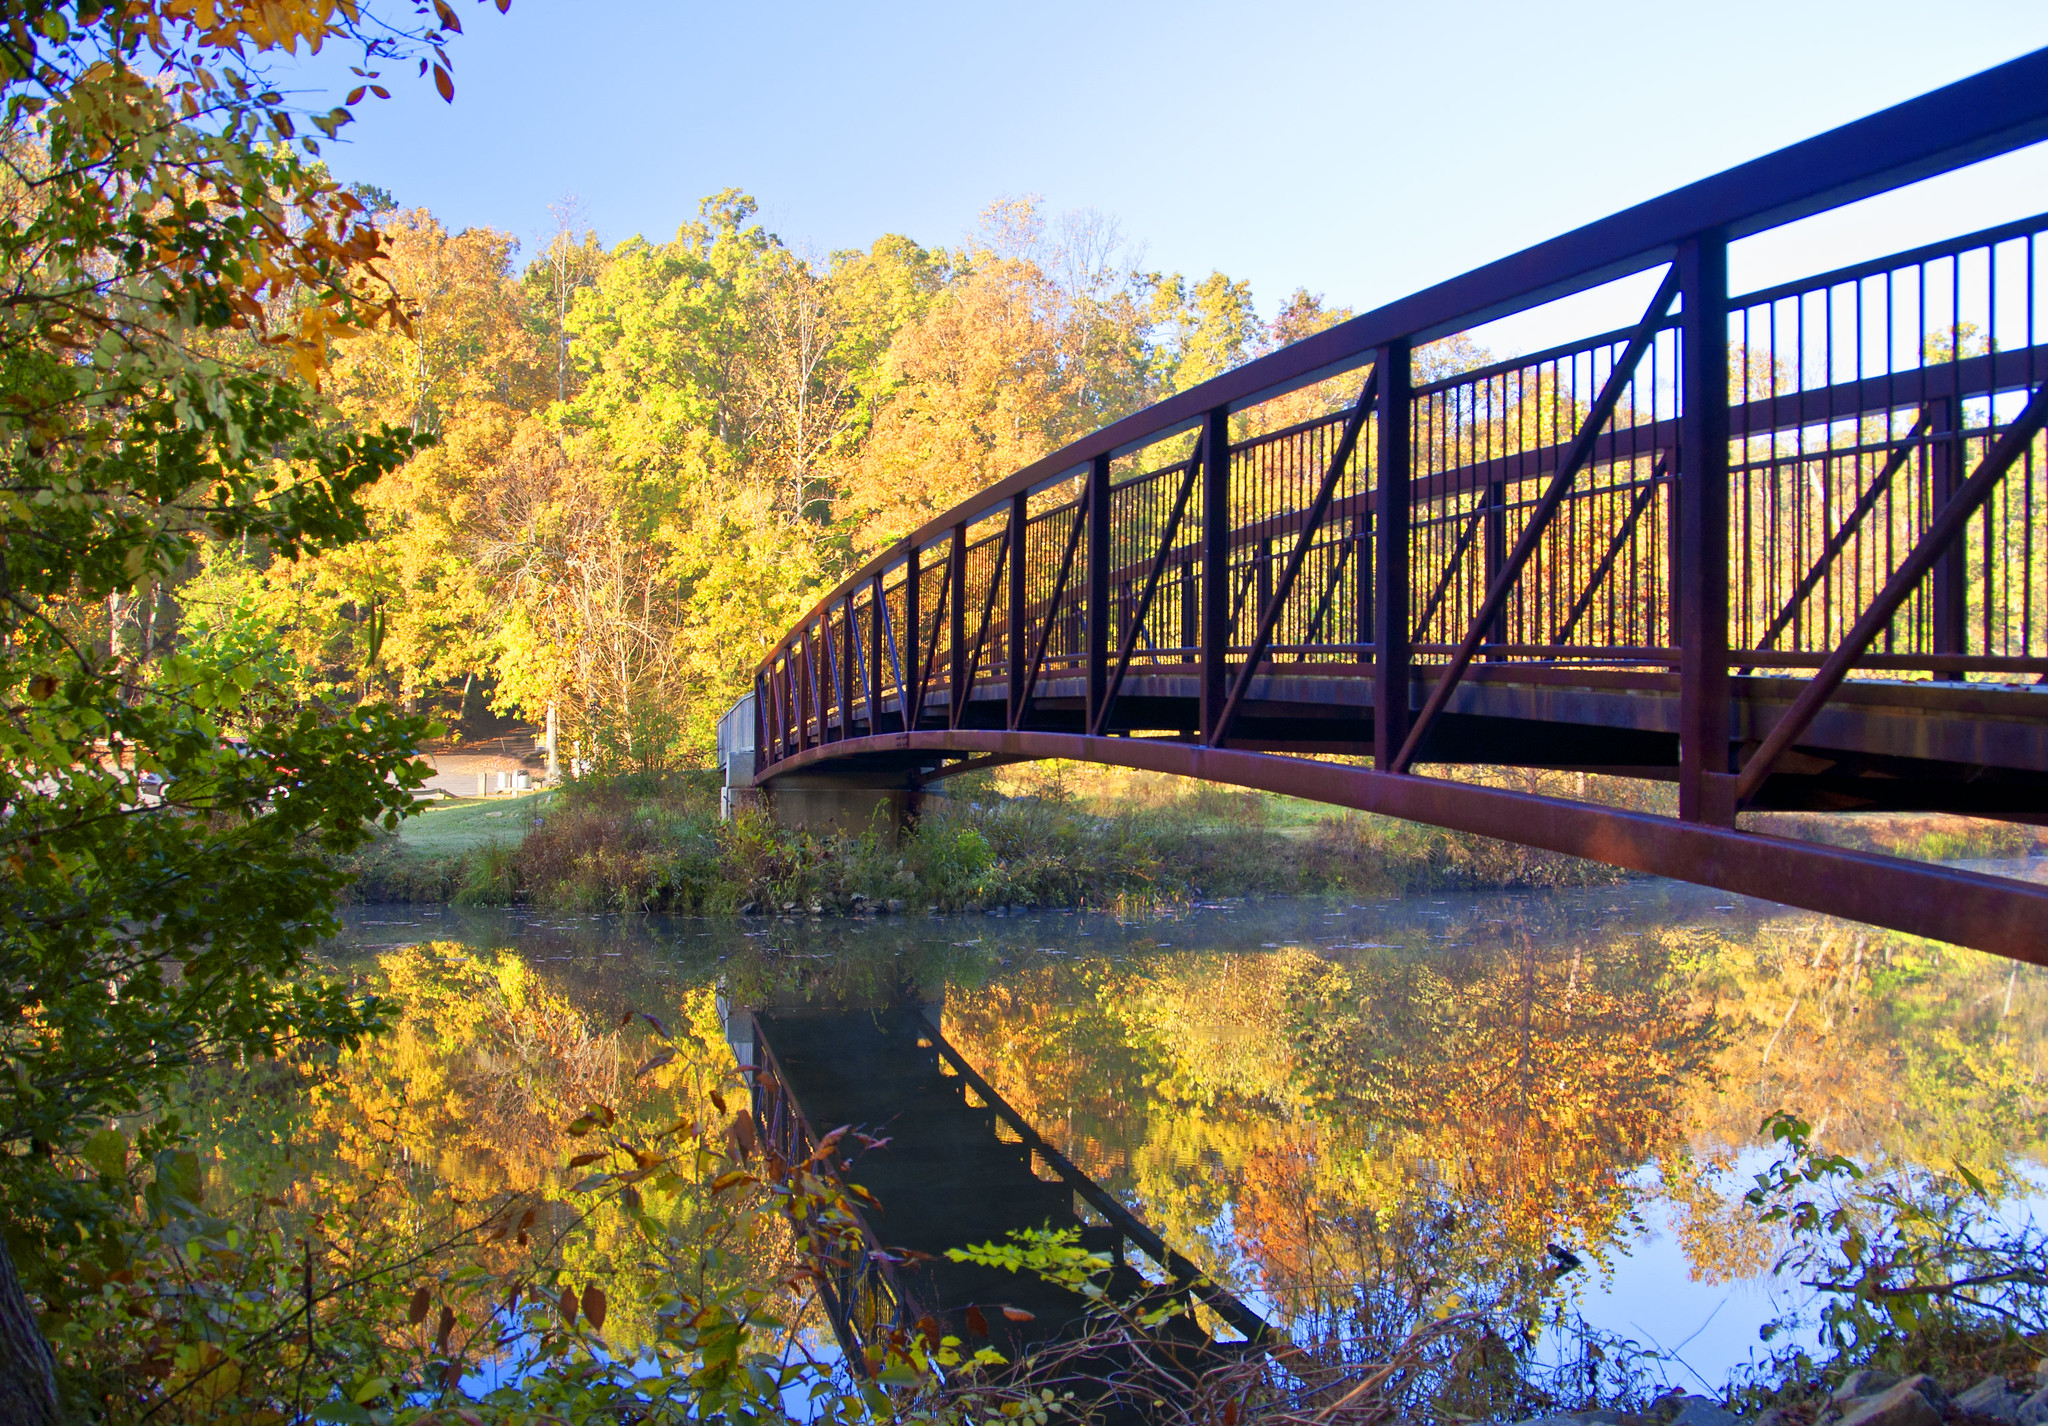 Beaver Lake Trail In Virginia Is A 2-Mile Loop Bursting With Fall Colors